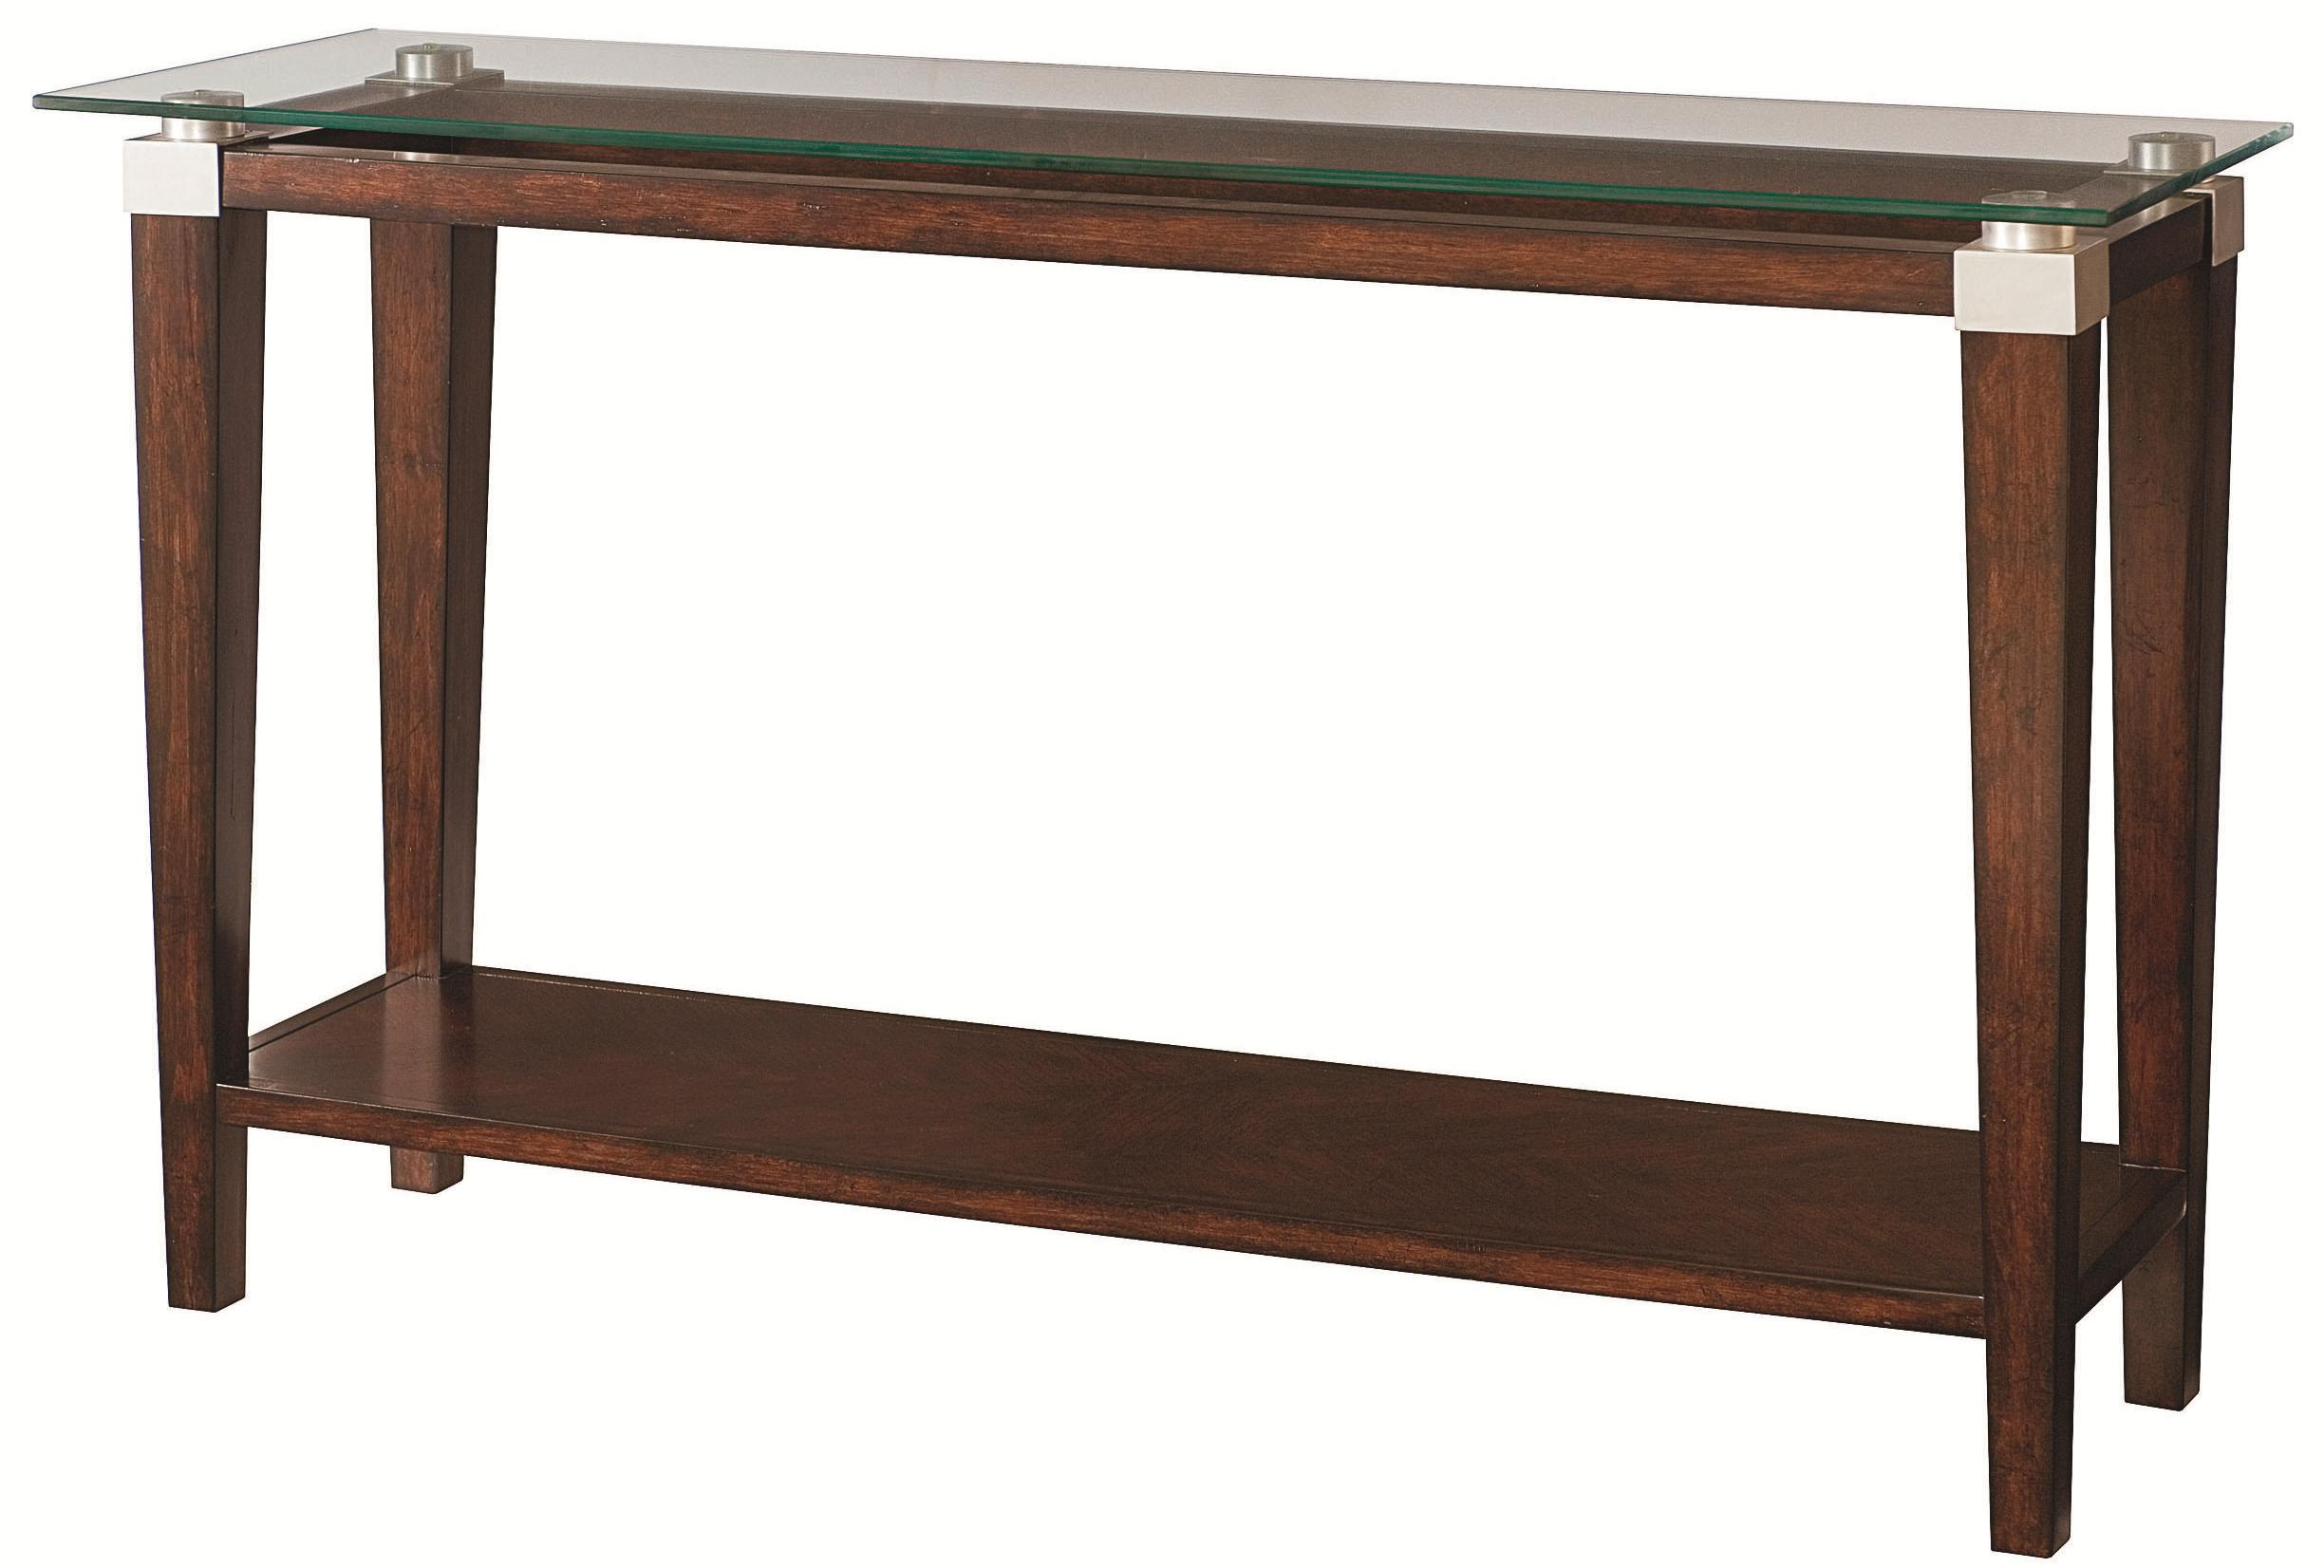 Hammary solitaire contemporary sofa table with glass top for Sofa table rules